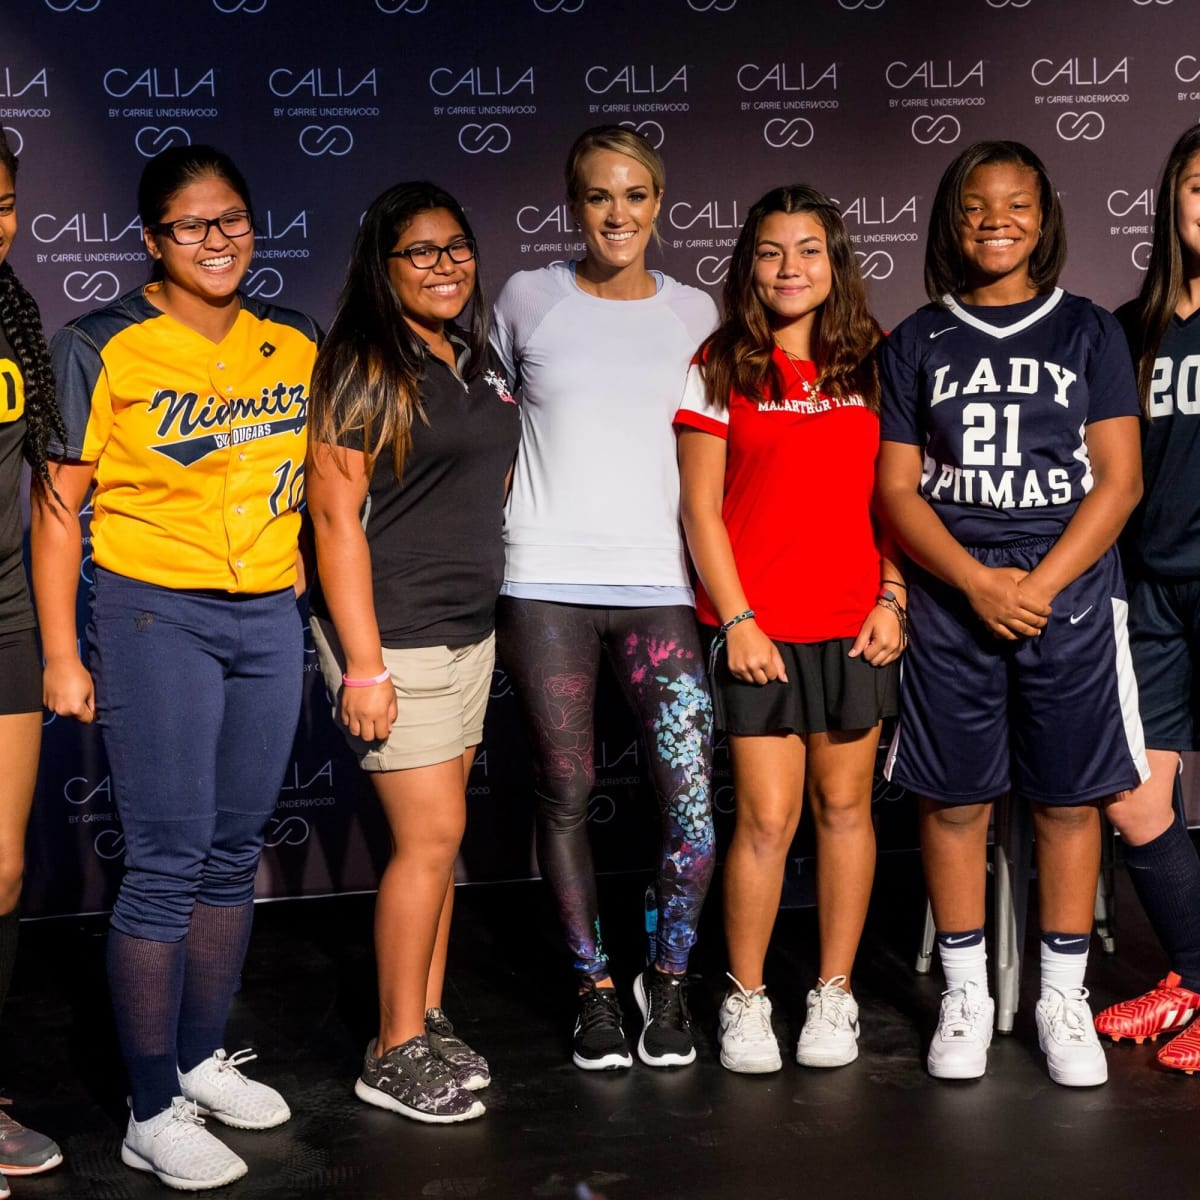 Carrie Underwood/Calia/Dick's Sporting Goods